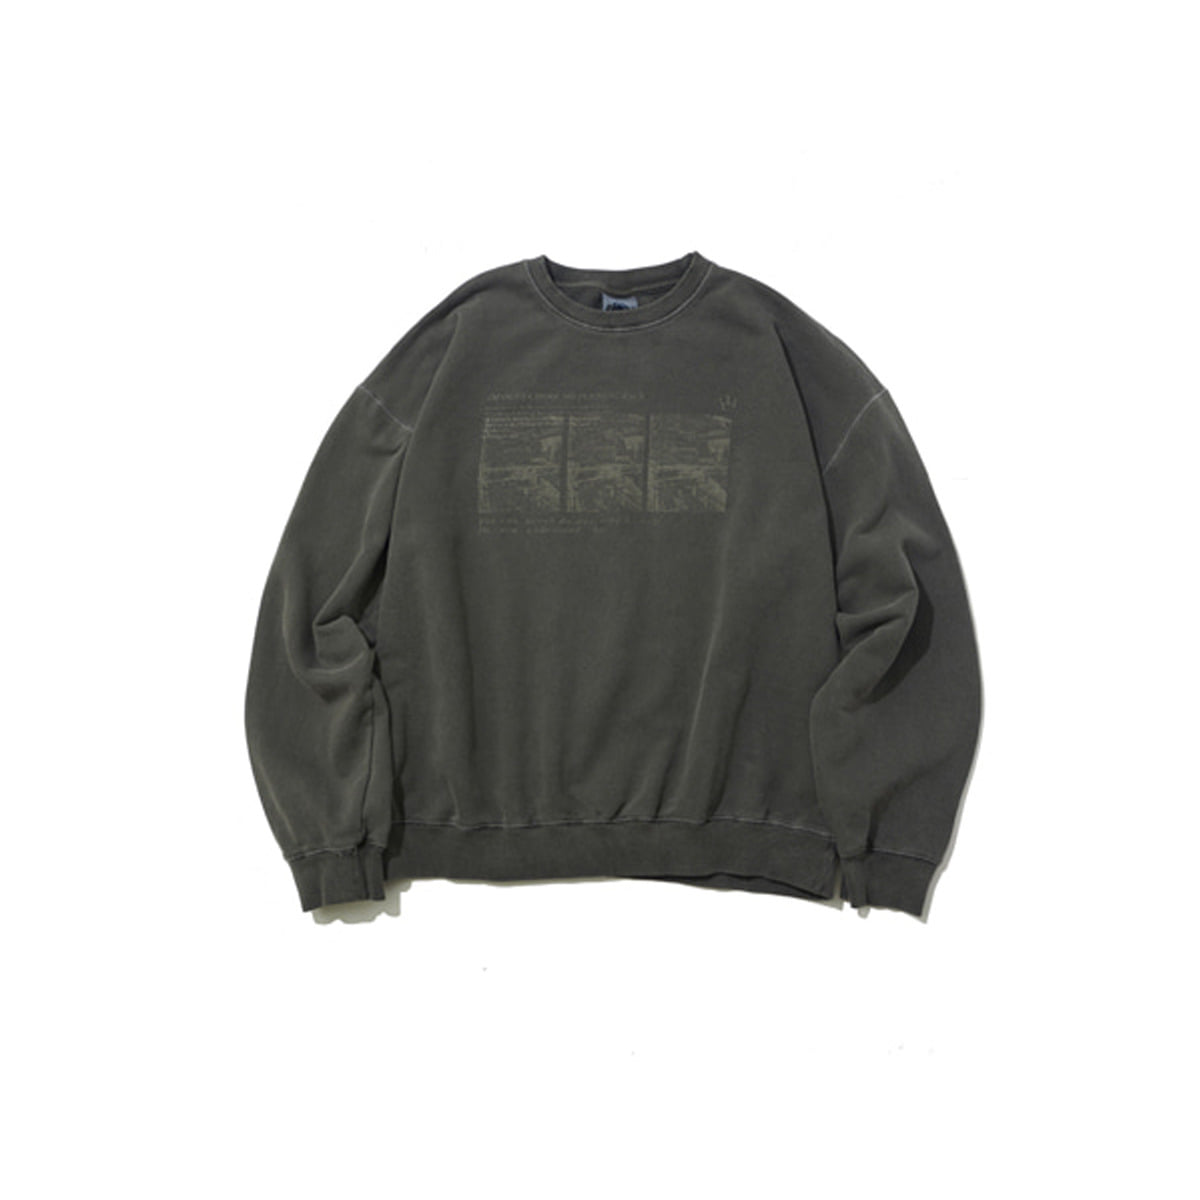 Faded Sweatshirt, Charcoal